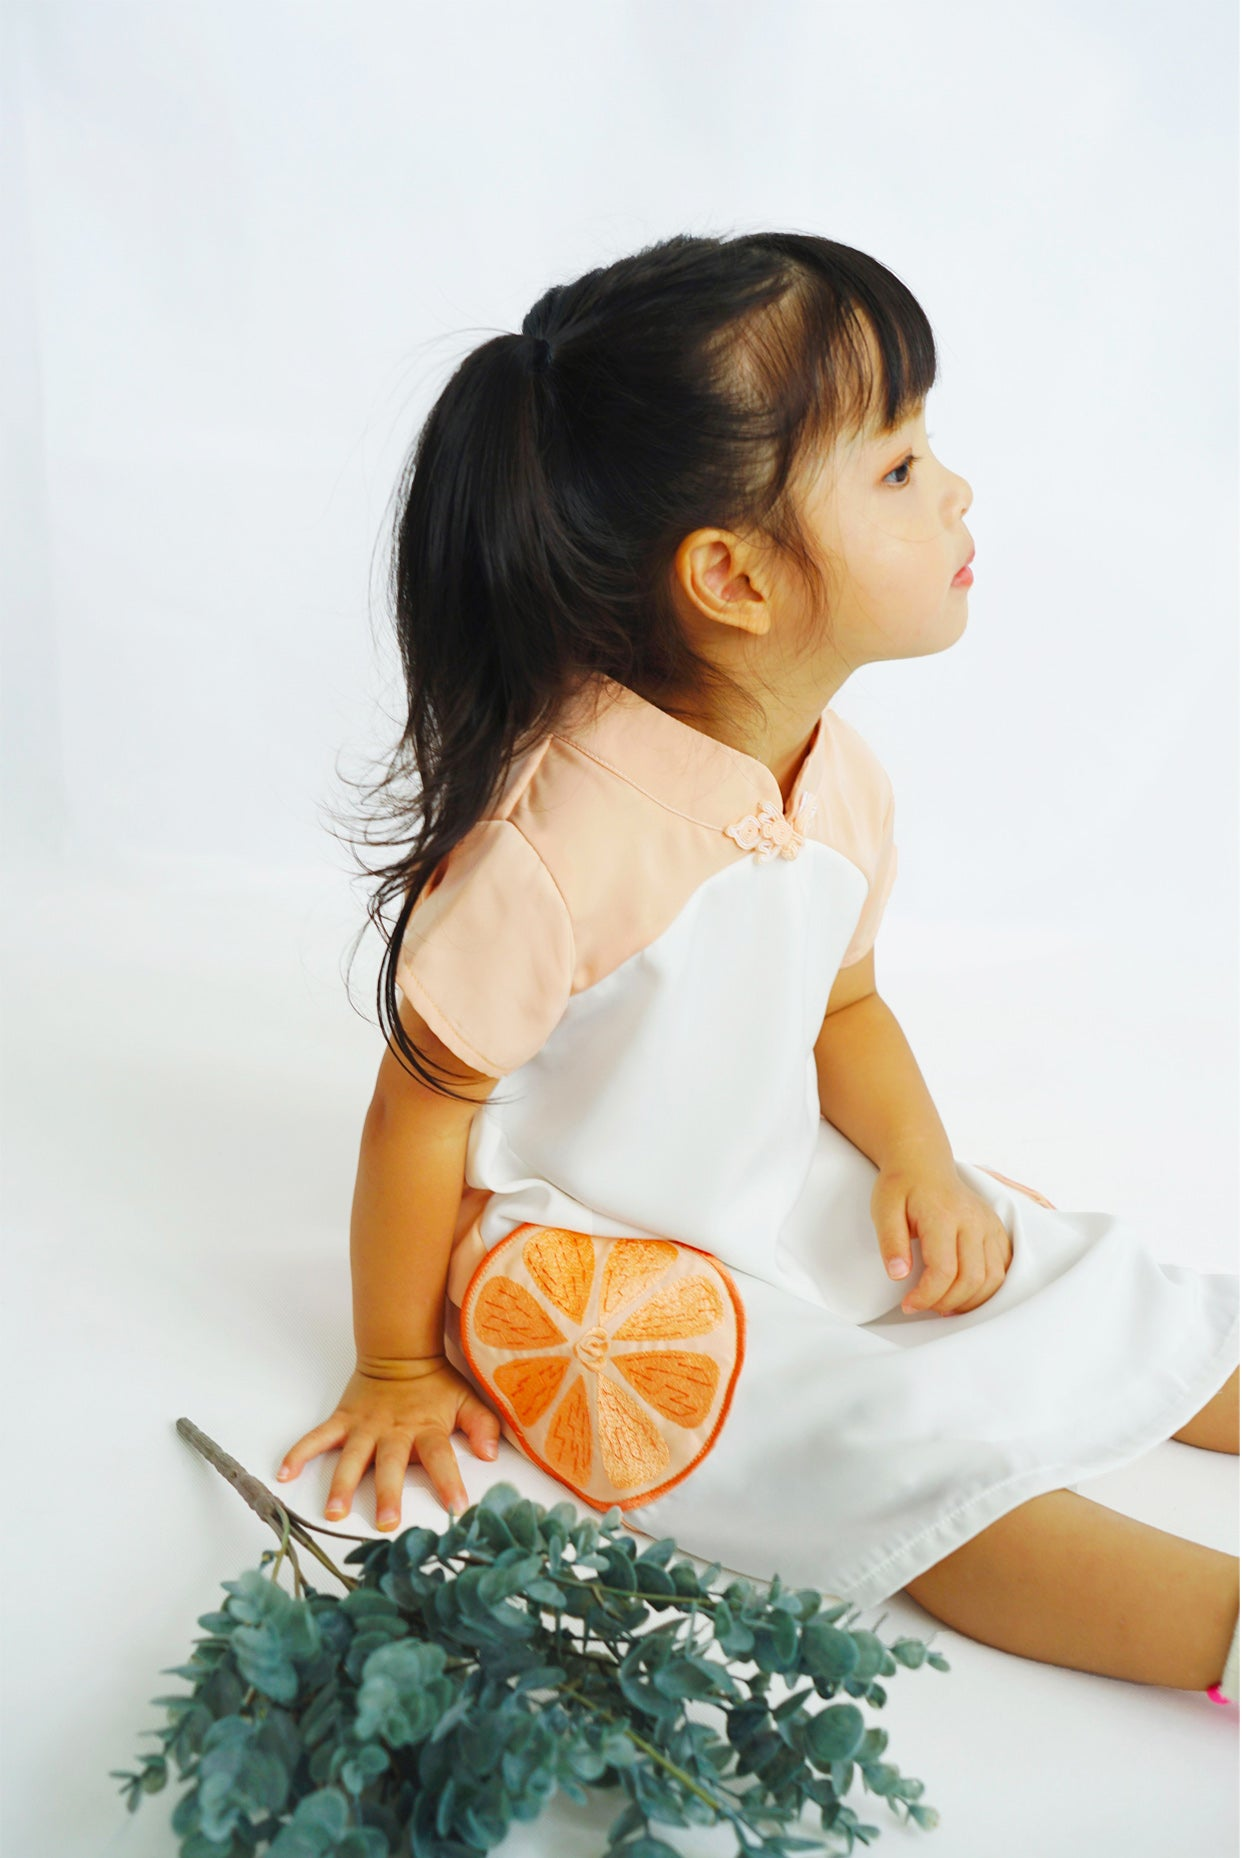 CNY Edition - Mini Dress with Orange Pockets and Mandarin Collar (Pink) - MILLAROLLA